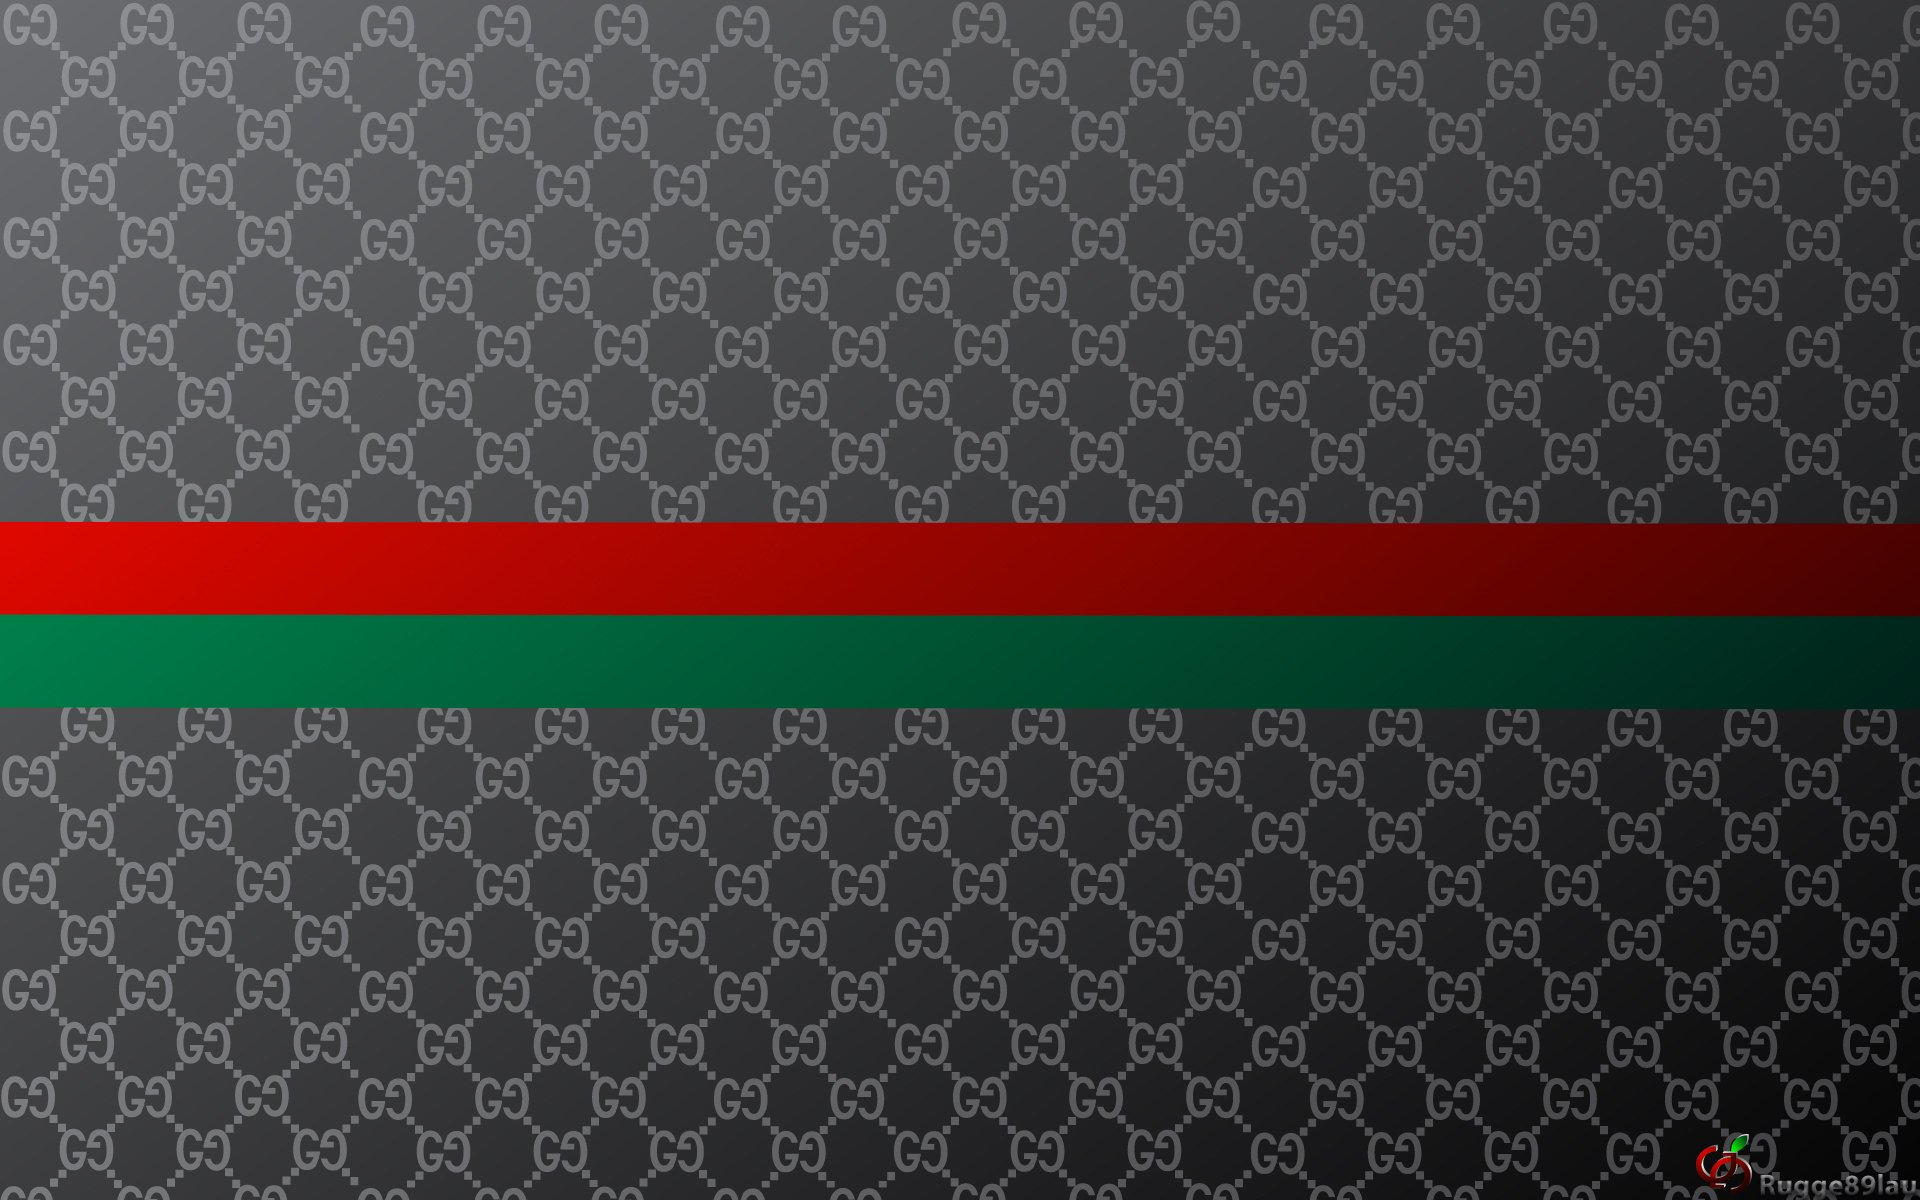 48+] Gucci Wallpaper HD on WallpaperSafari